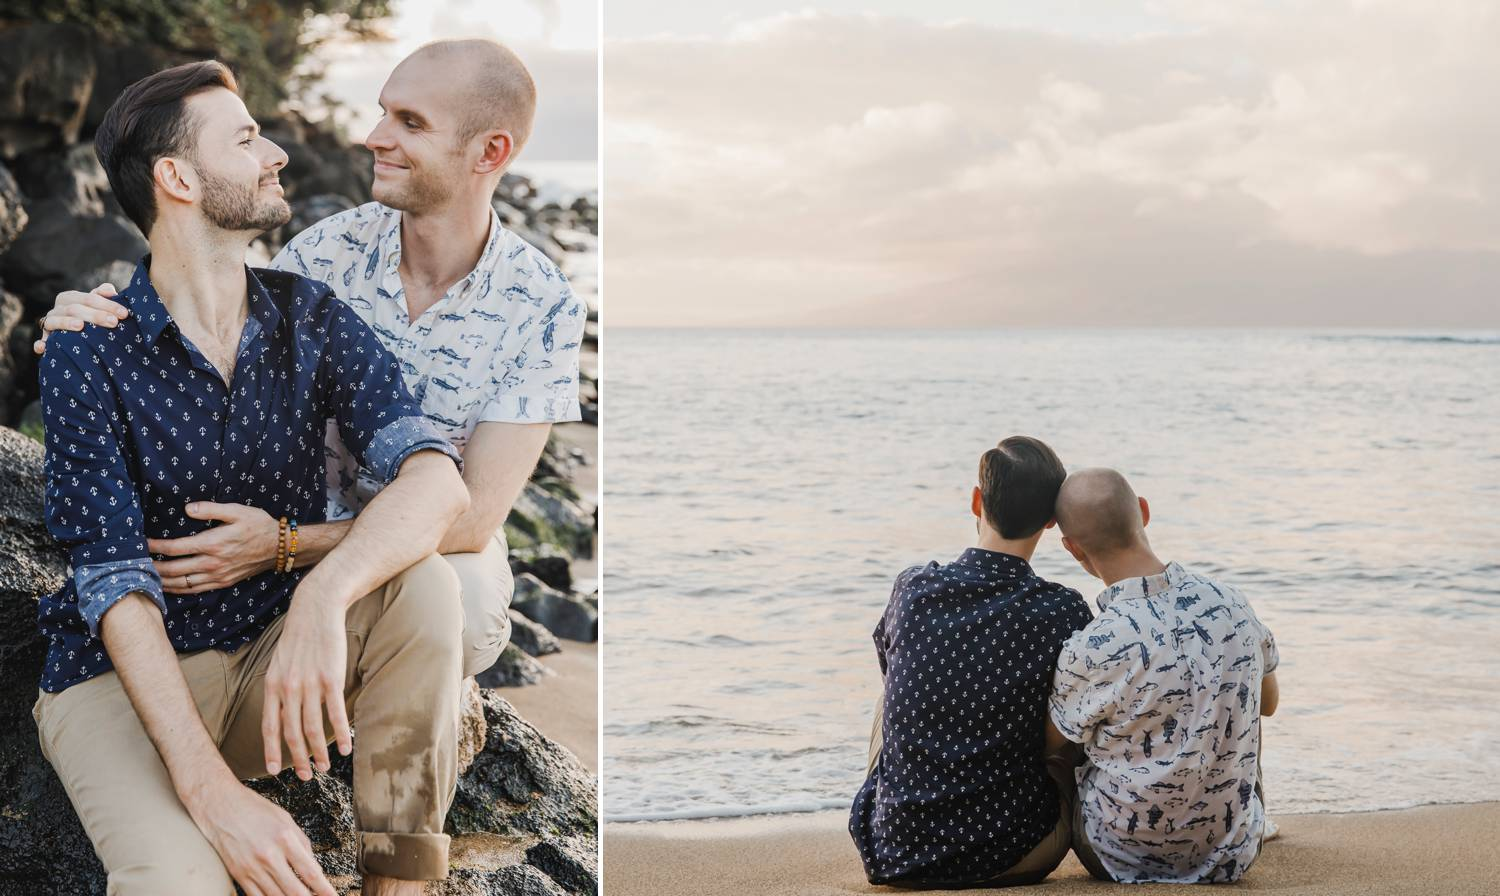 Two engaged men sit close on a beach at sunset